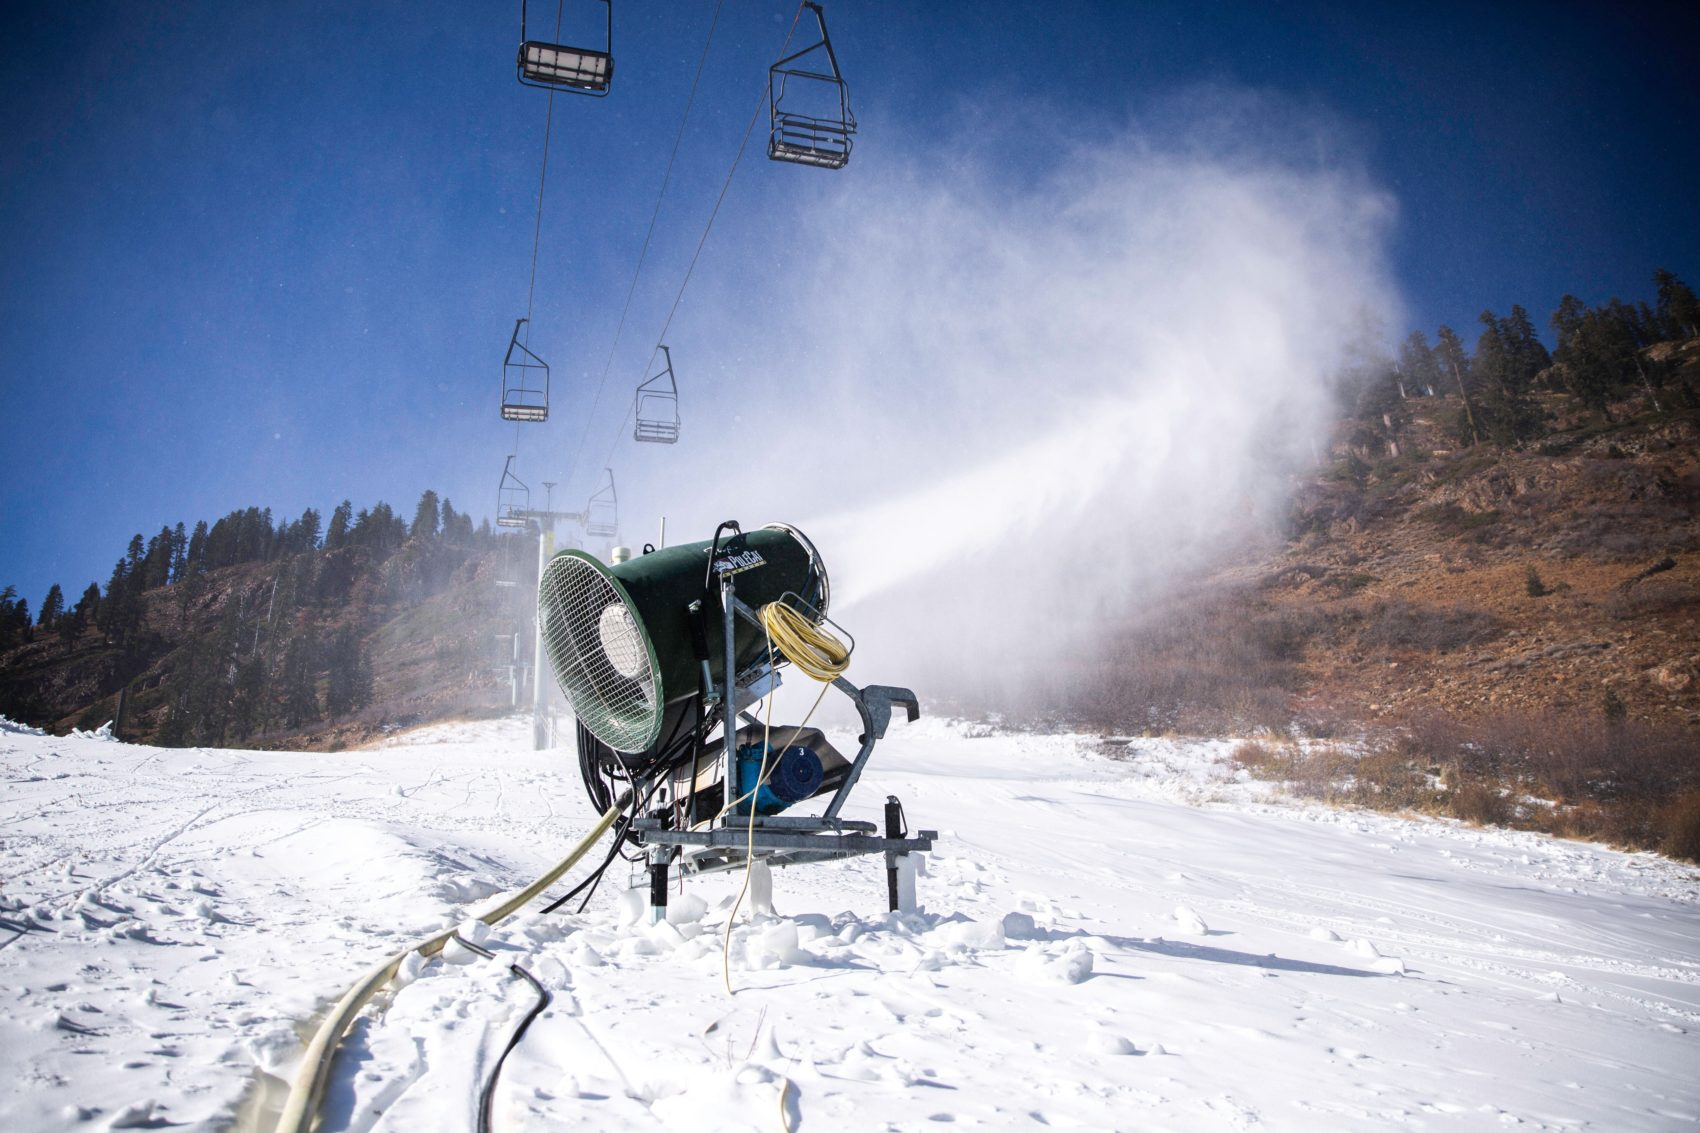 snowmaking, Squaw Valley, alpine meadows, california